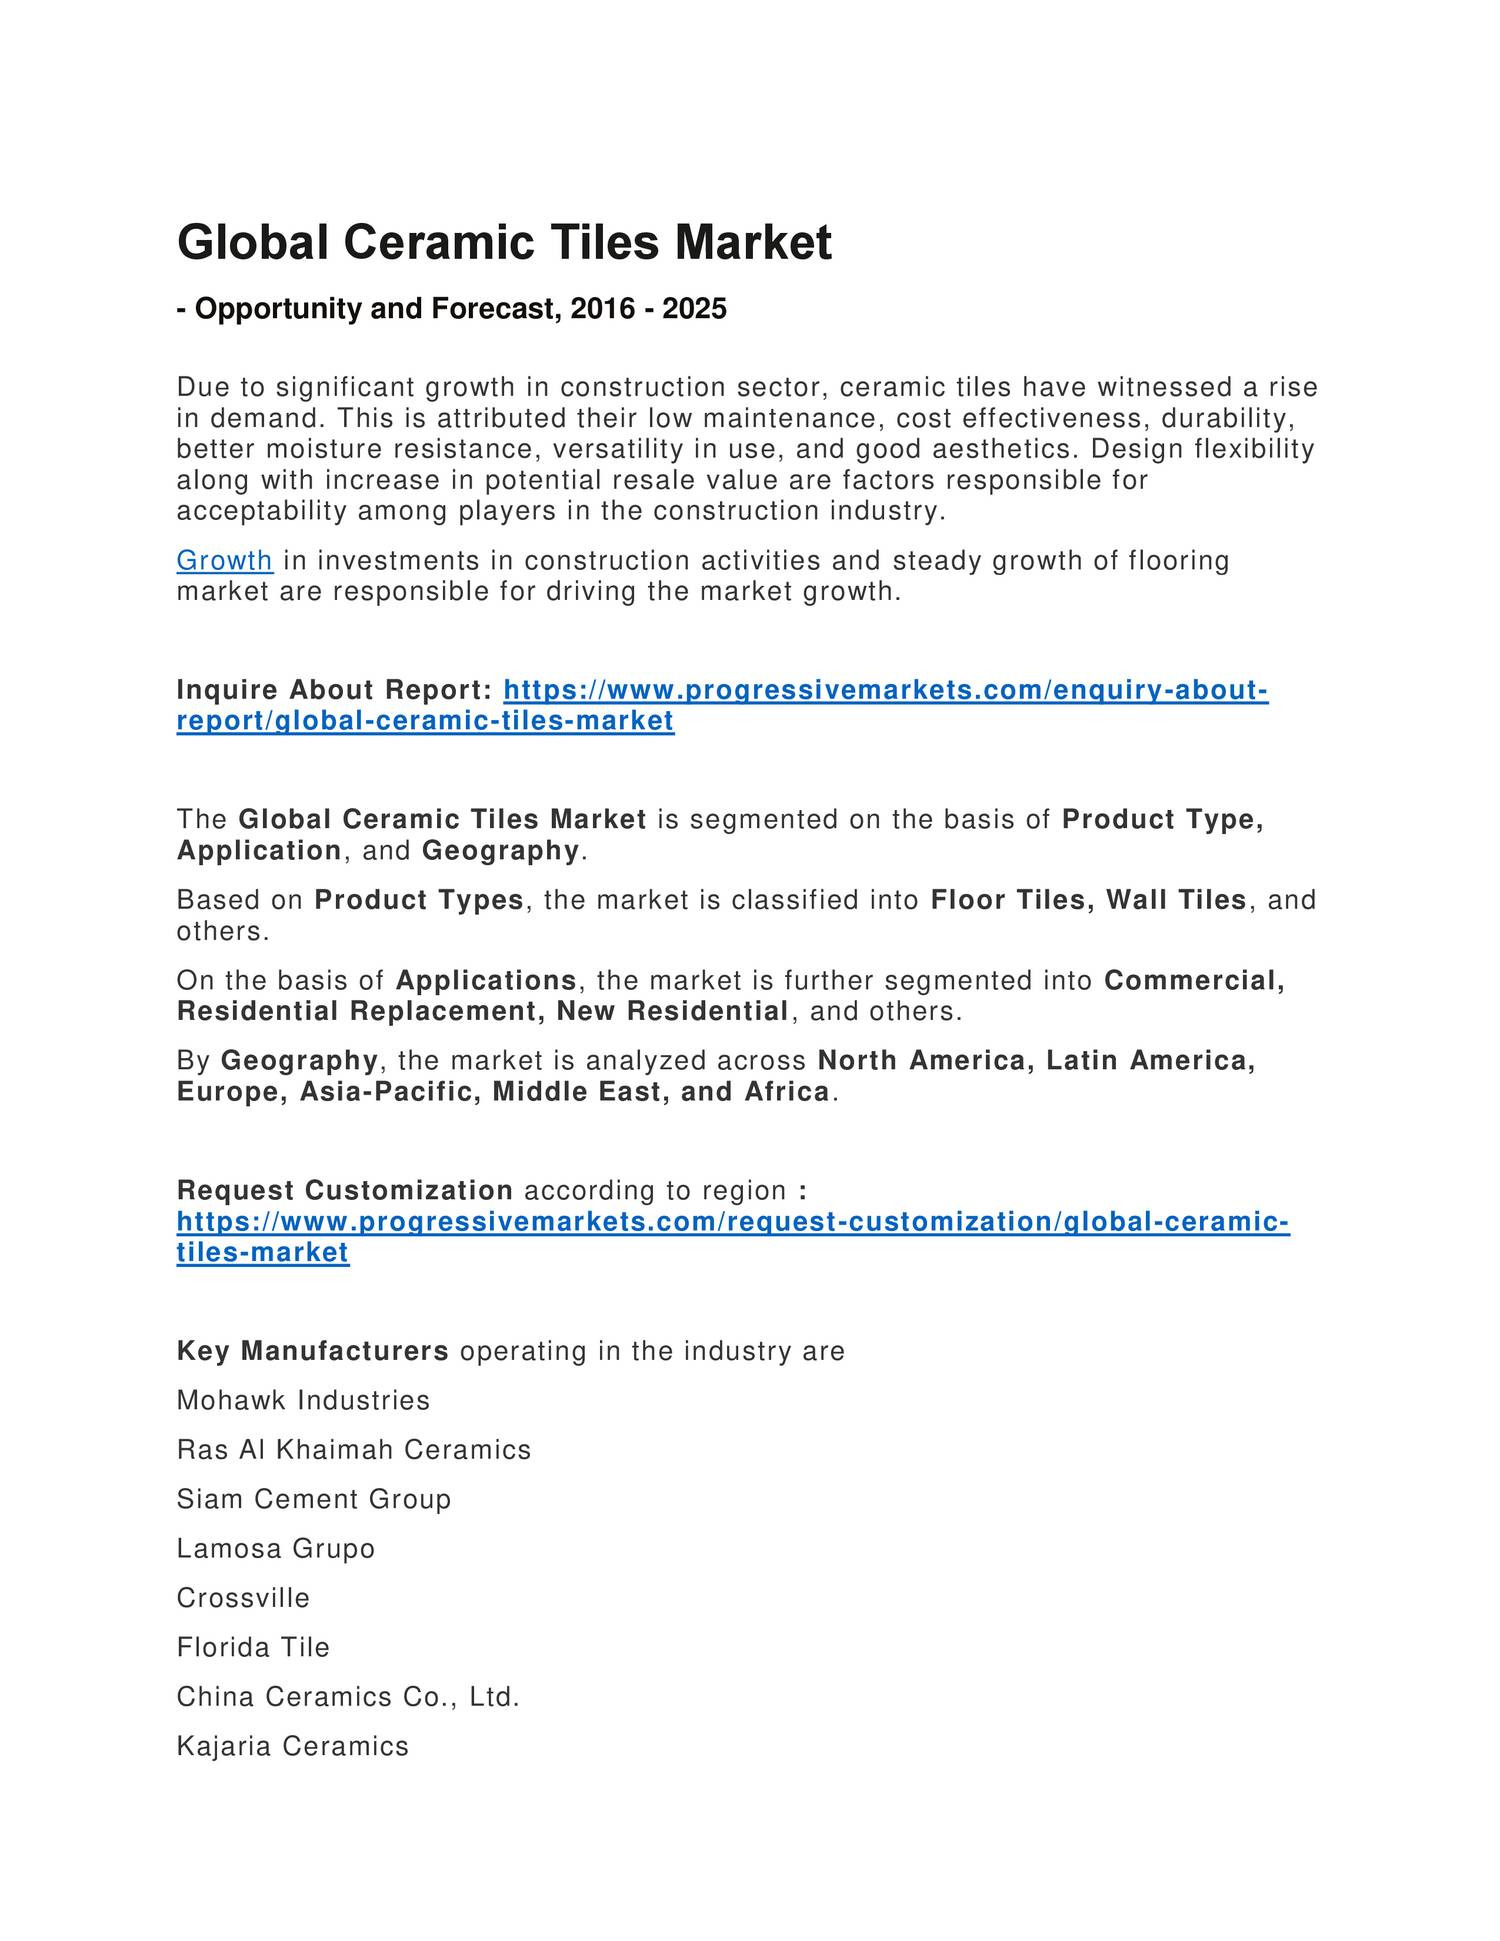 Ceramic tiles market research report size share global growth ceramic tiles market research report size share global growth opportunities and forecast 2016 2025pdf docdroid dailygadgetfo Choice Image